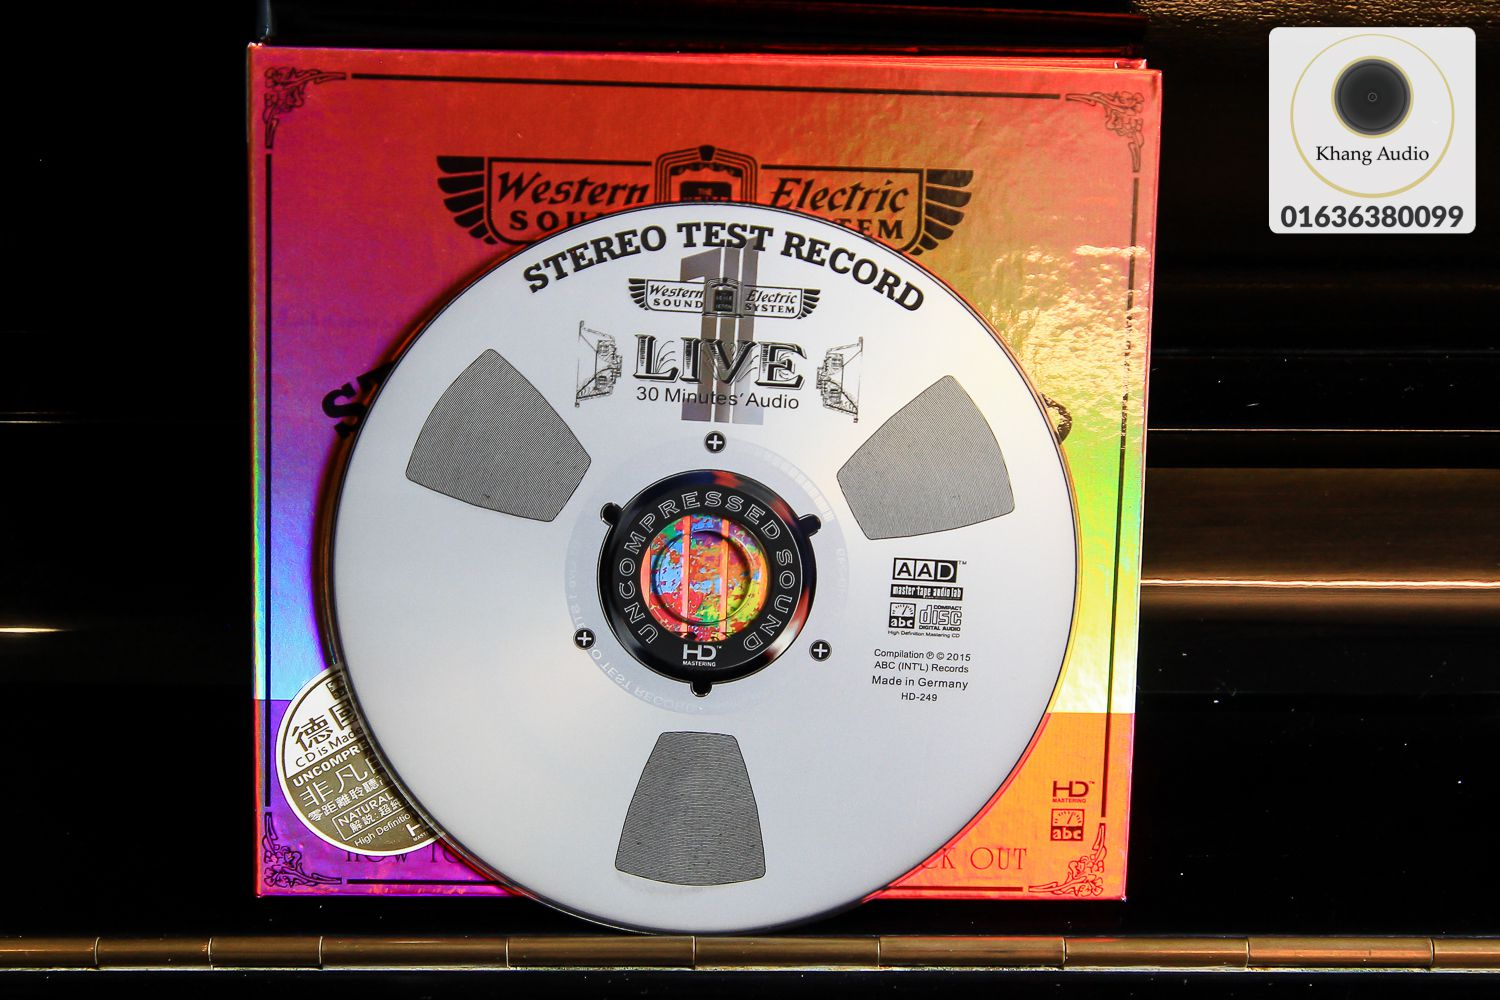 Stereo Test Record 1 Live 30 Minutes Audio HQ